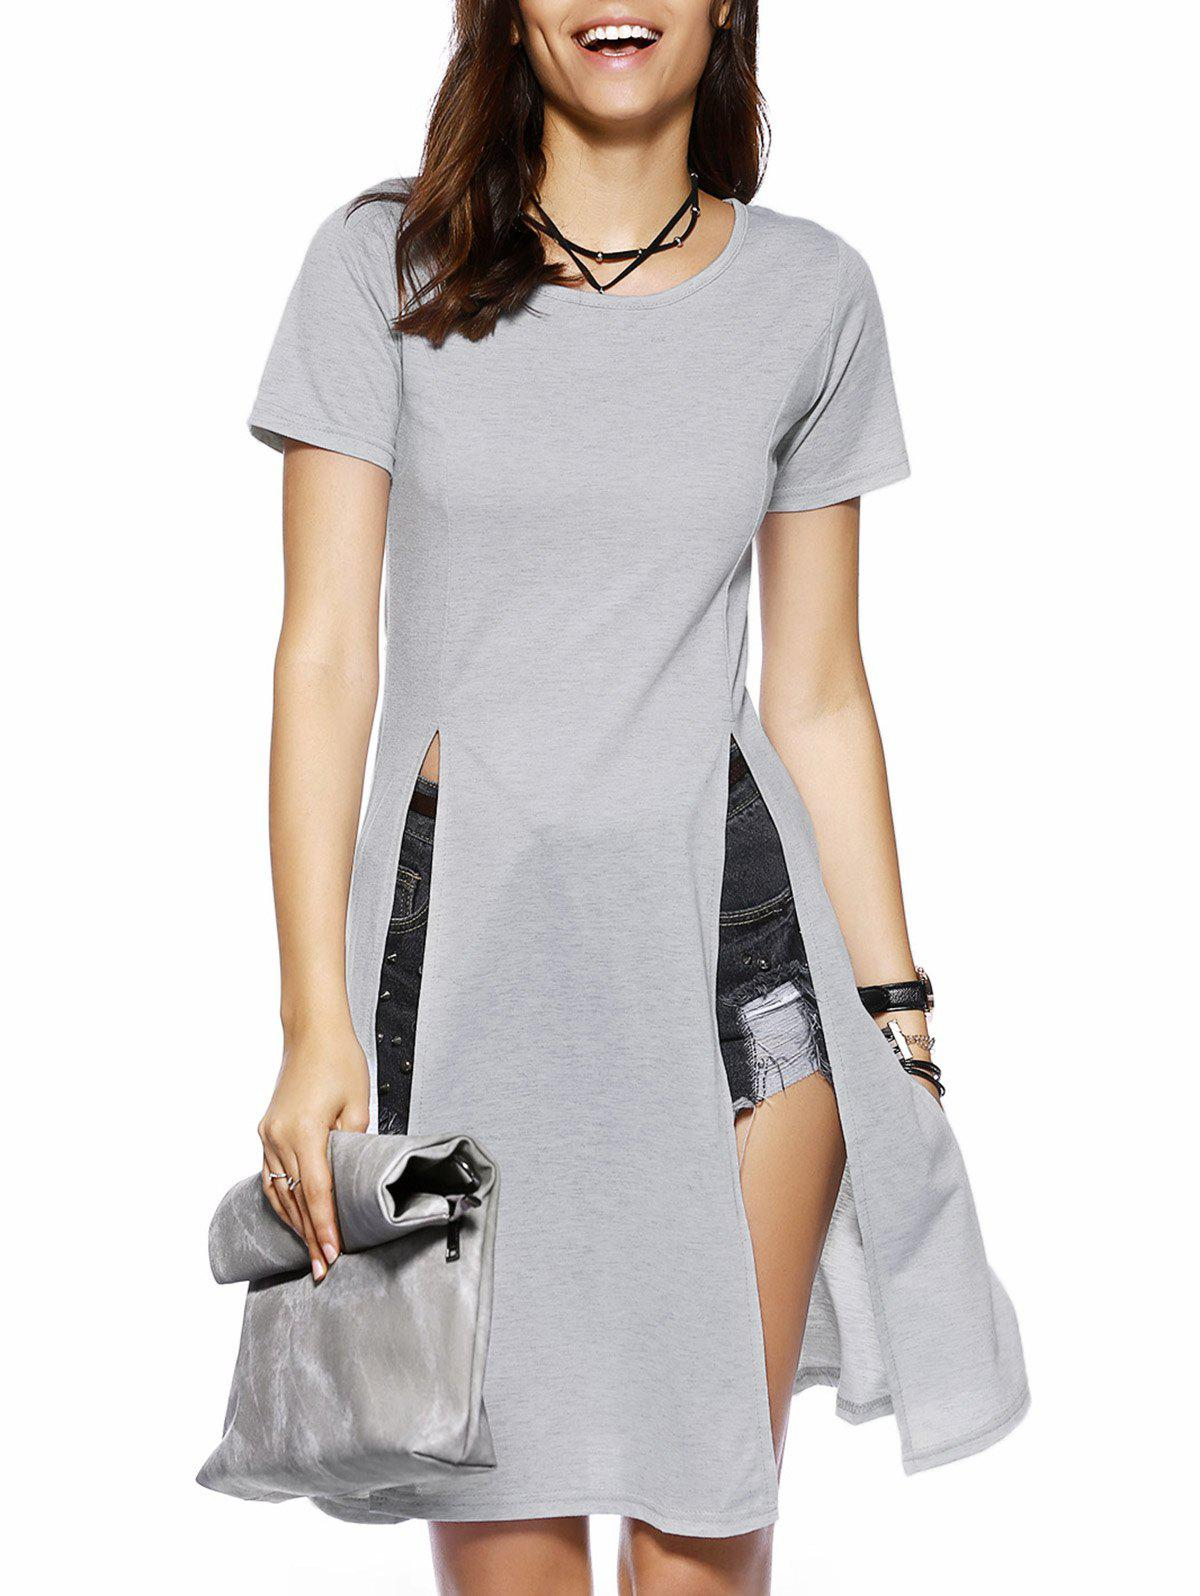 Longline High Slit T-Shirt - GRAY XL